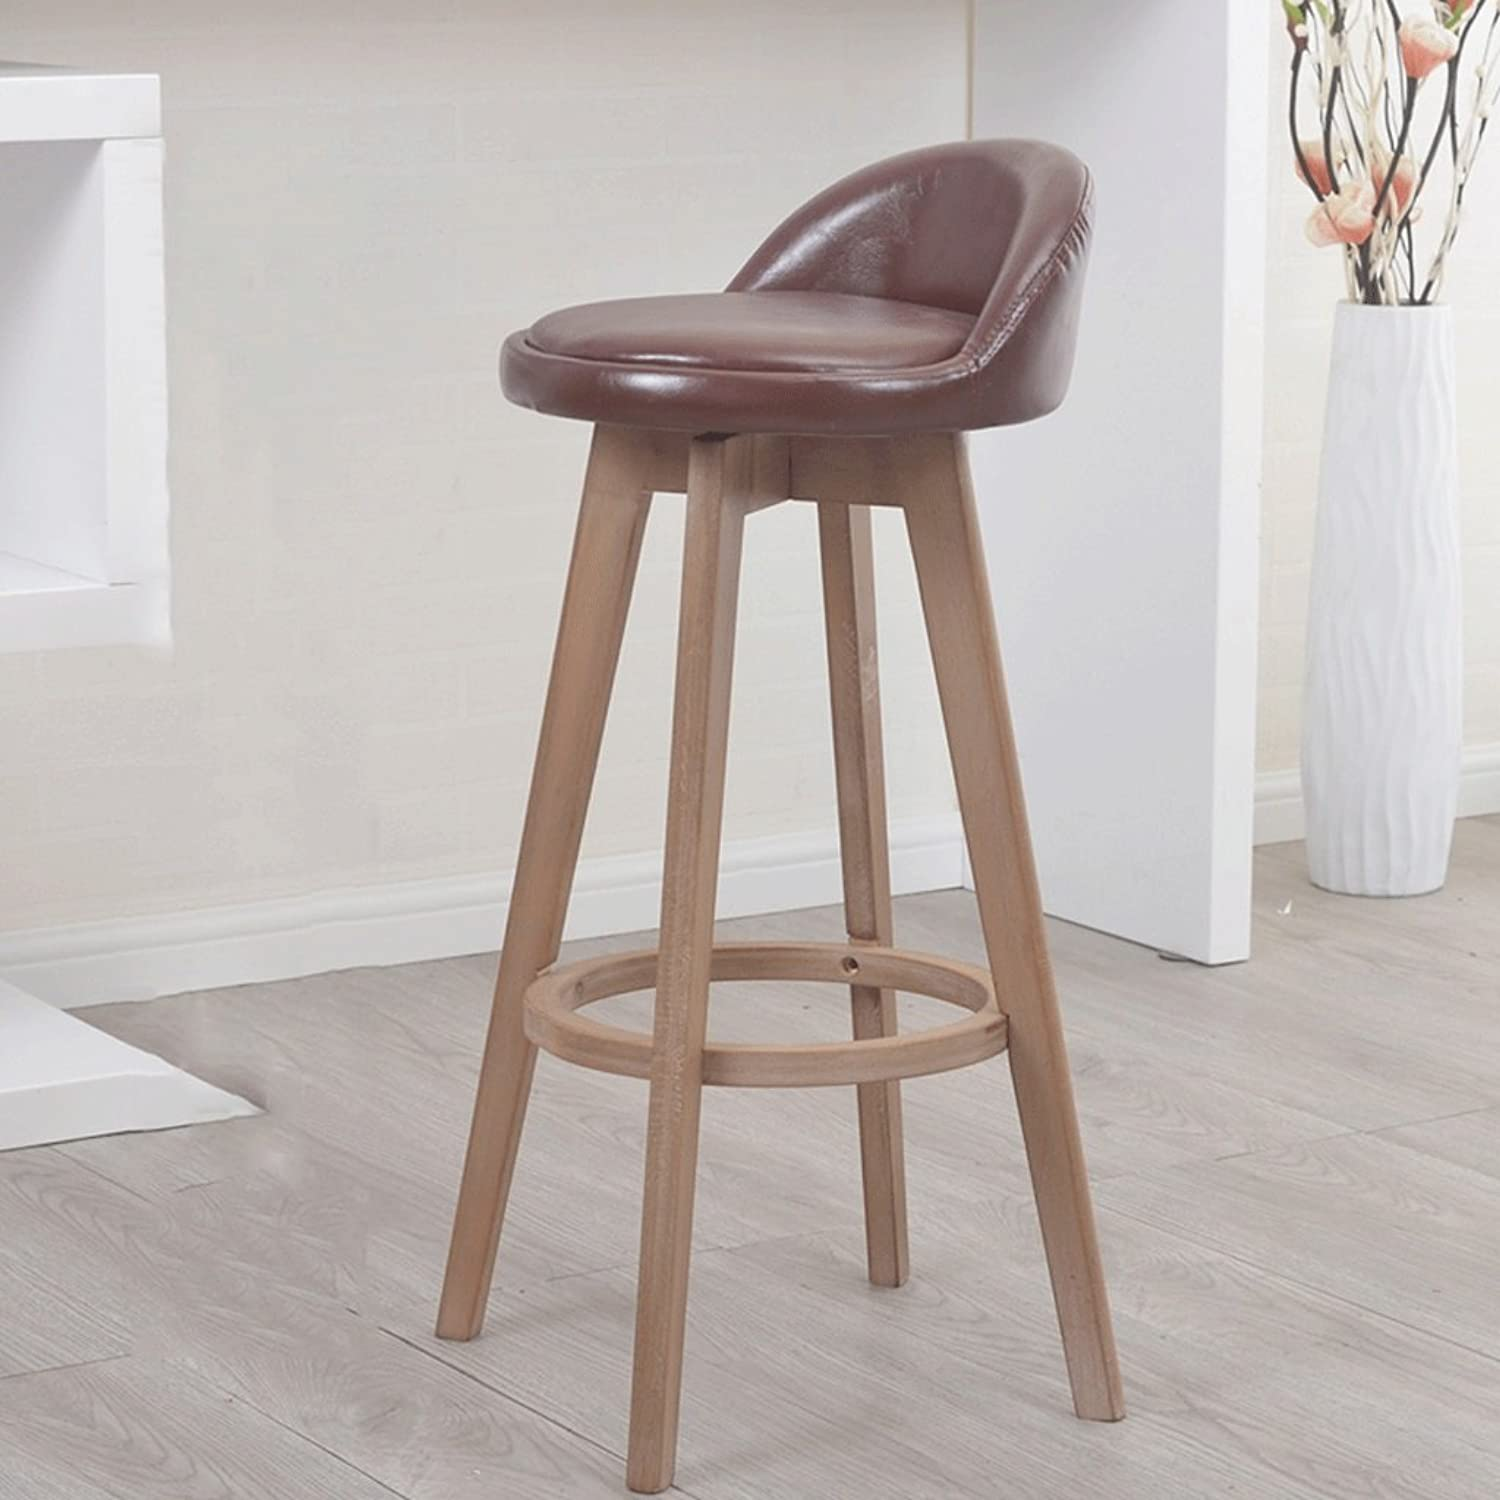 Barstool Solid Wood Bar Chair Brown Soft Leather Can redate The Stool Bar Chair Bar Chair High Chair (Size   63cm)